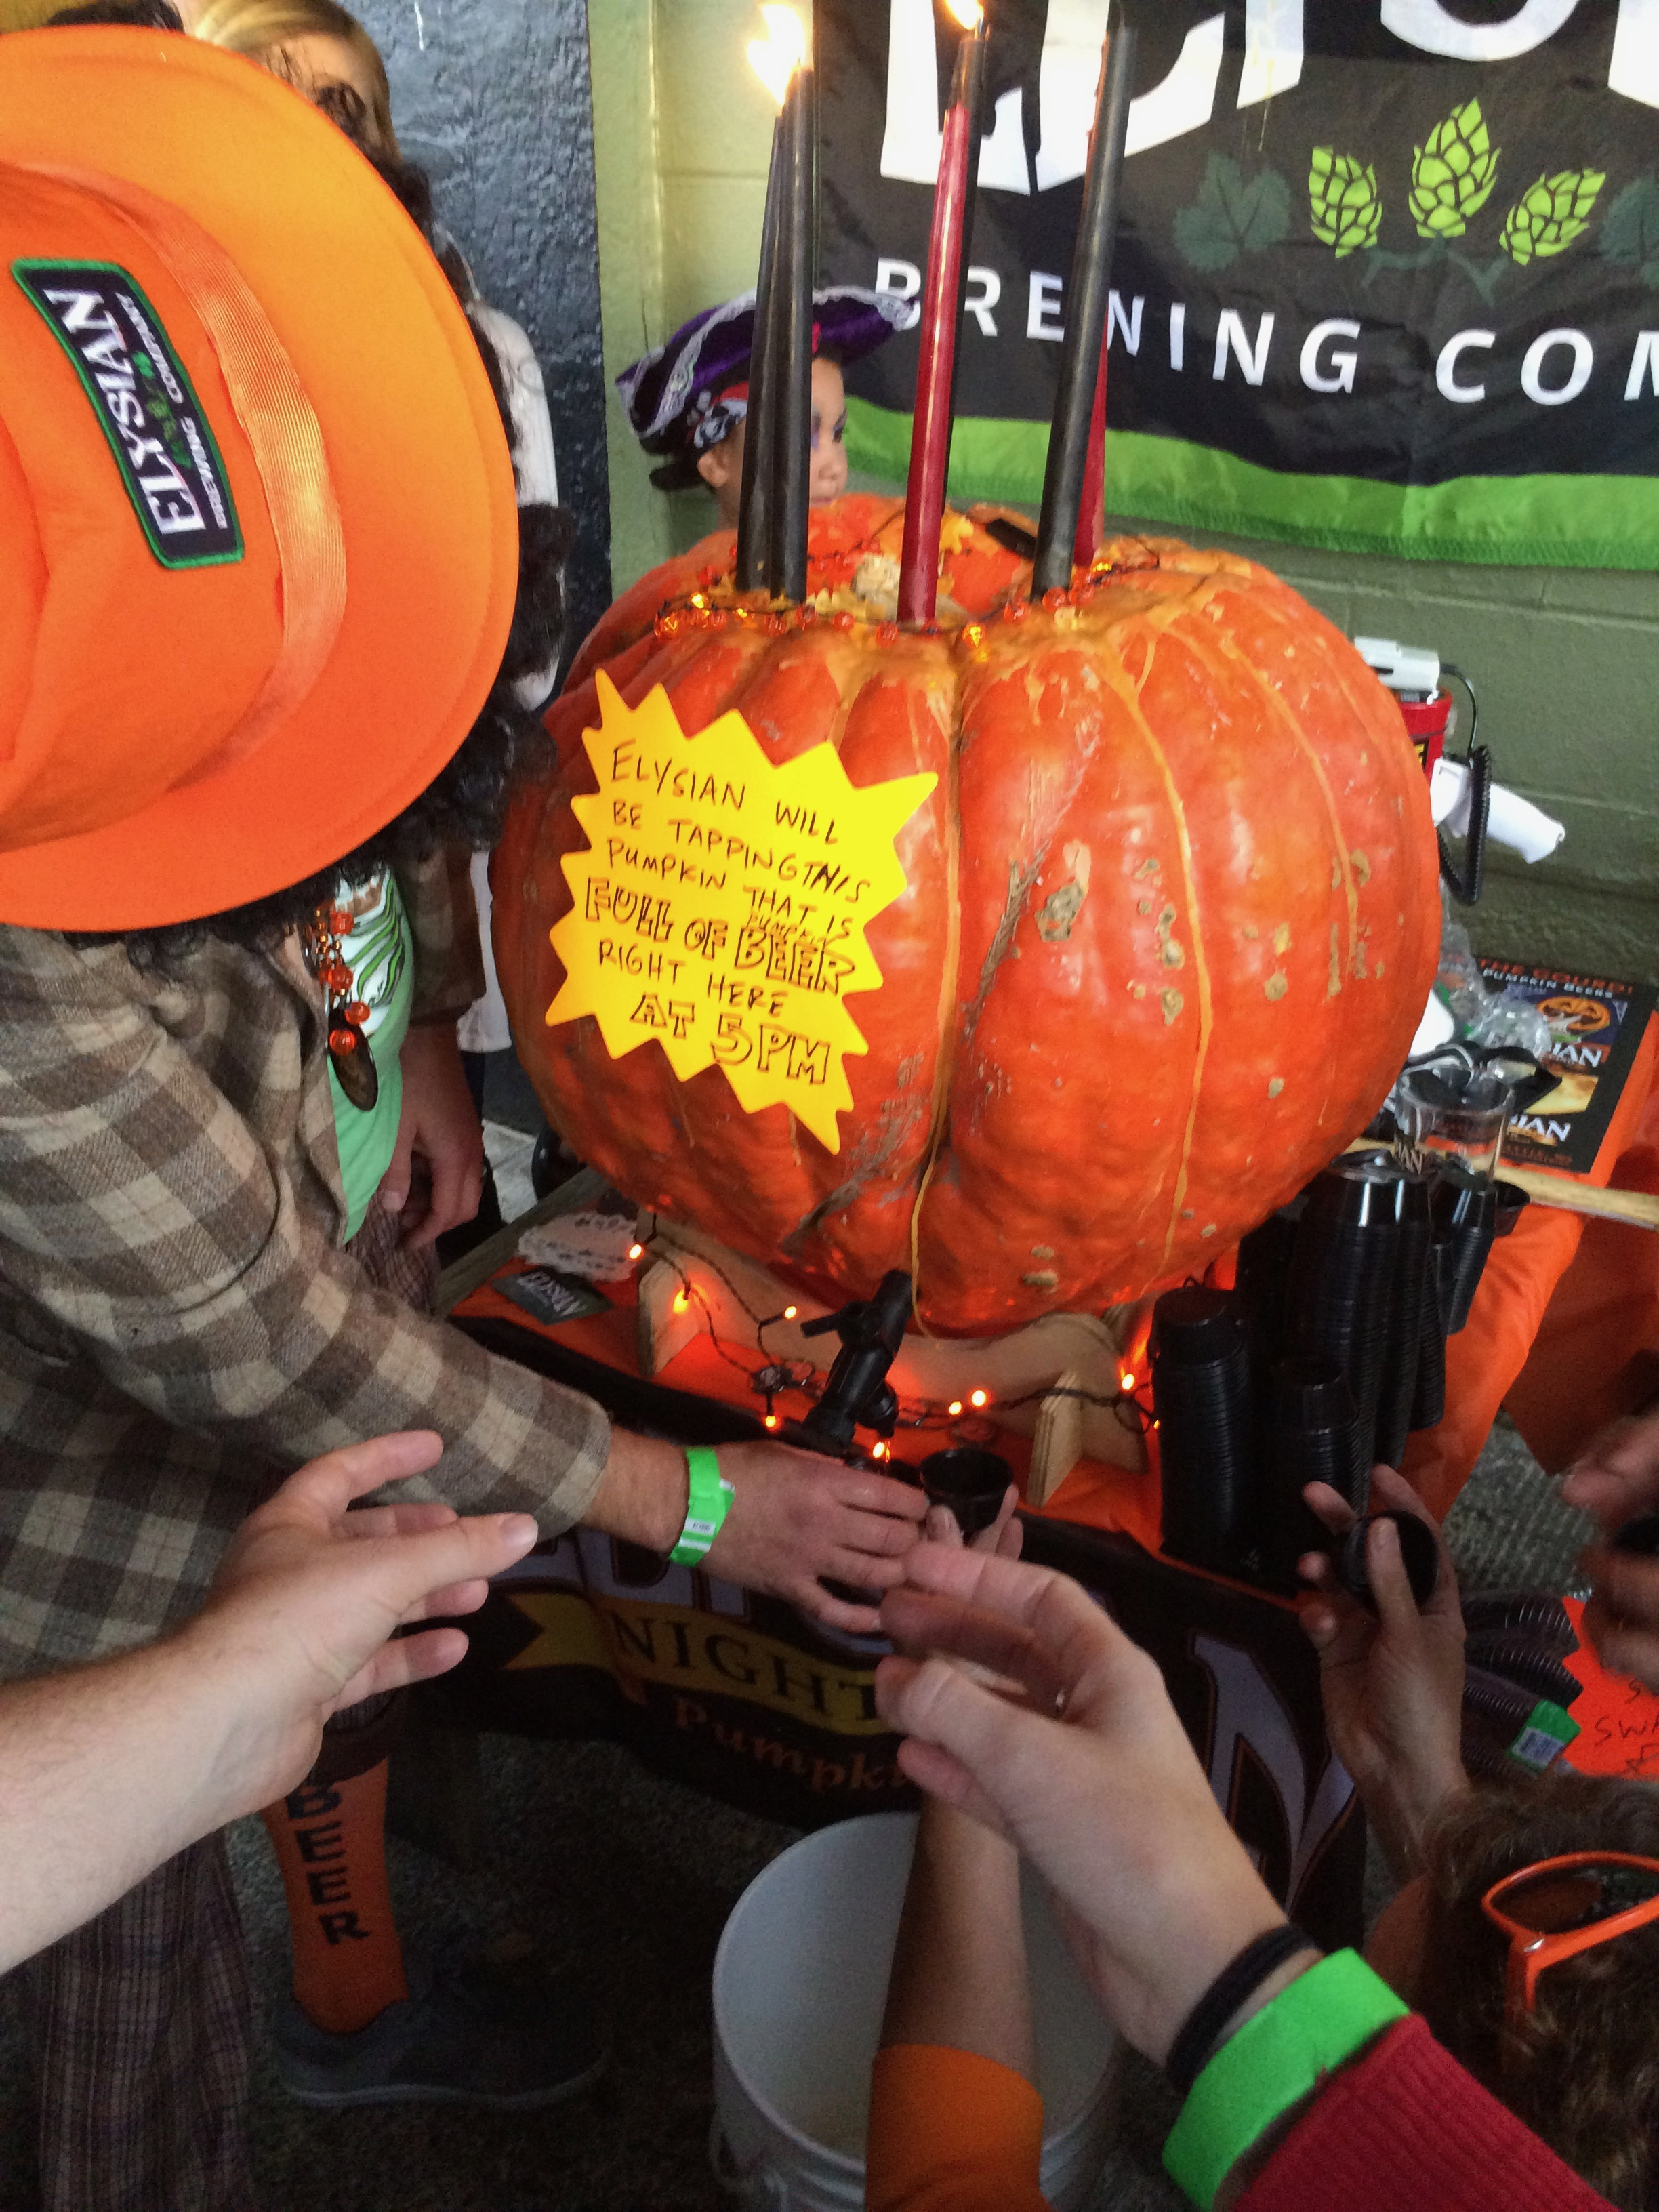 Elysian Brewing pouring its pumpkin beer from directly from a gourd that included canned peaches added to the beer.